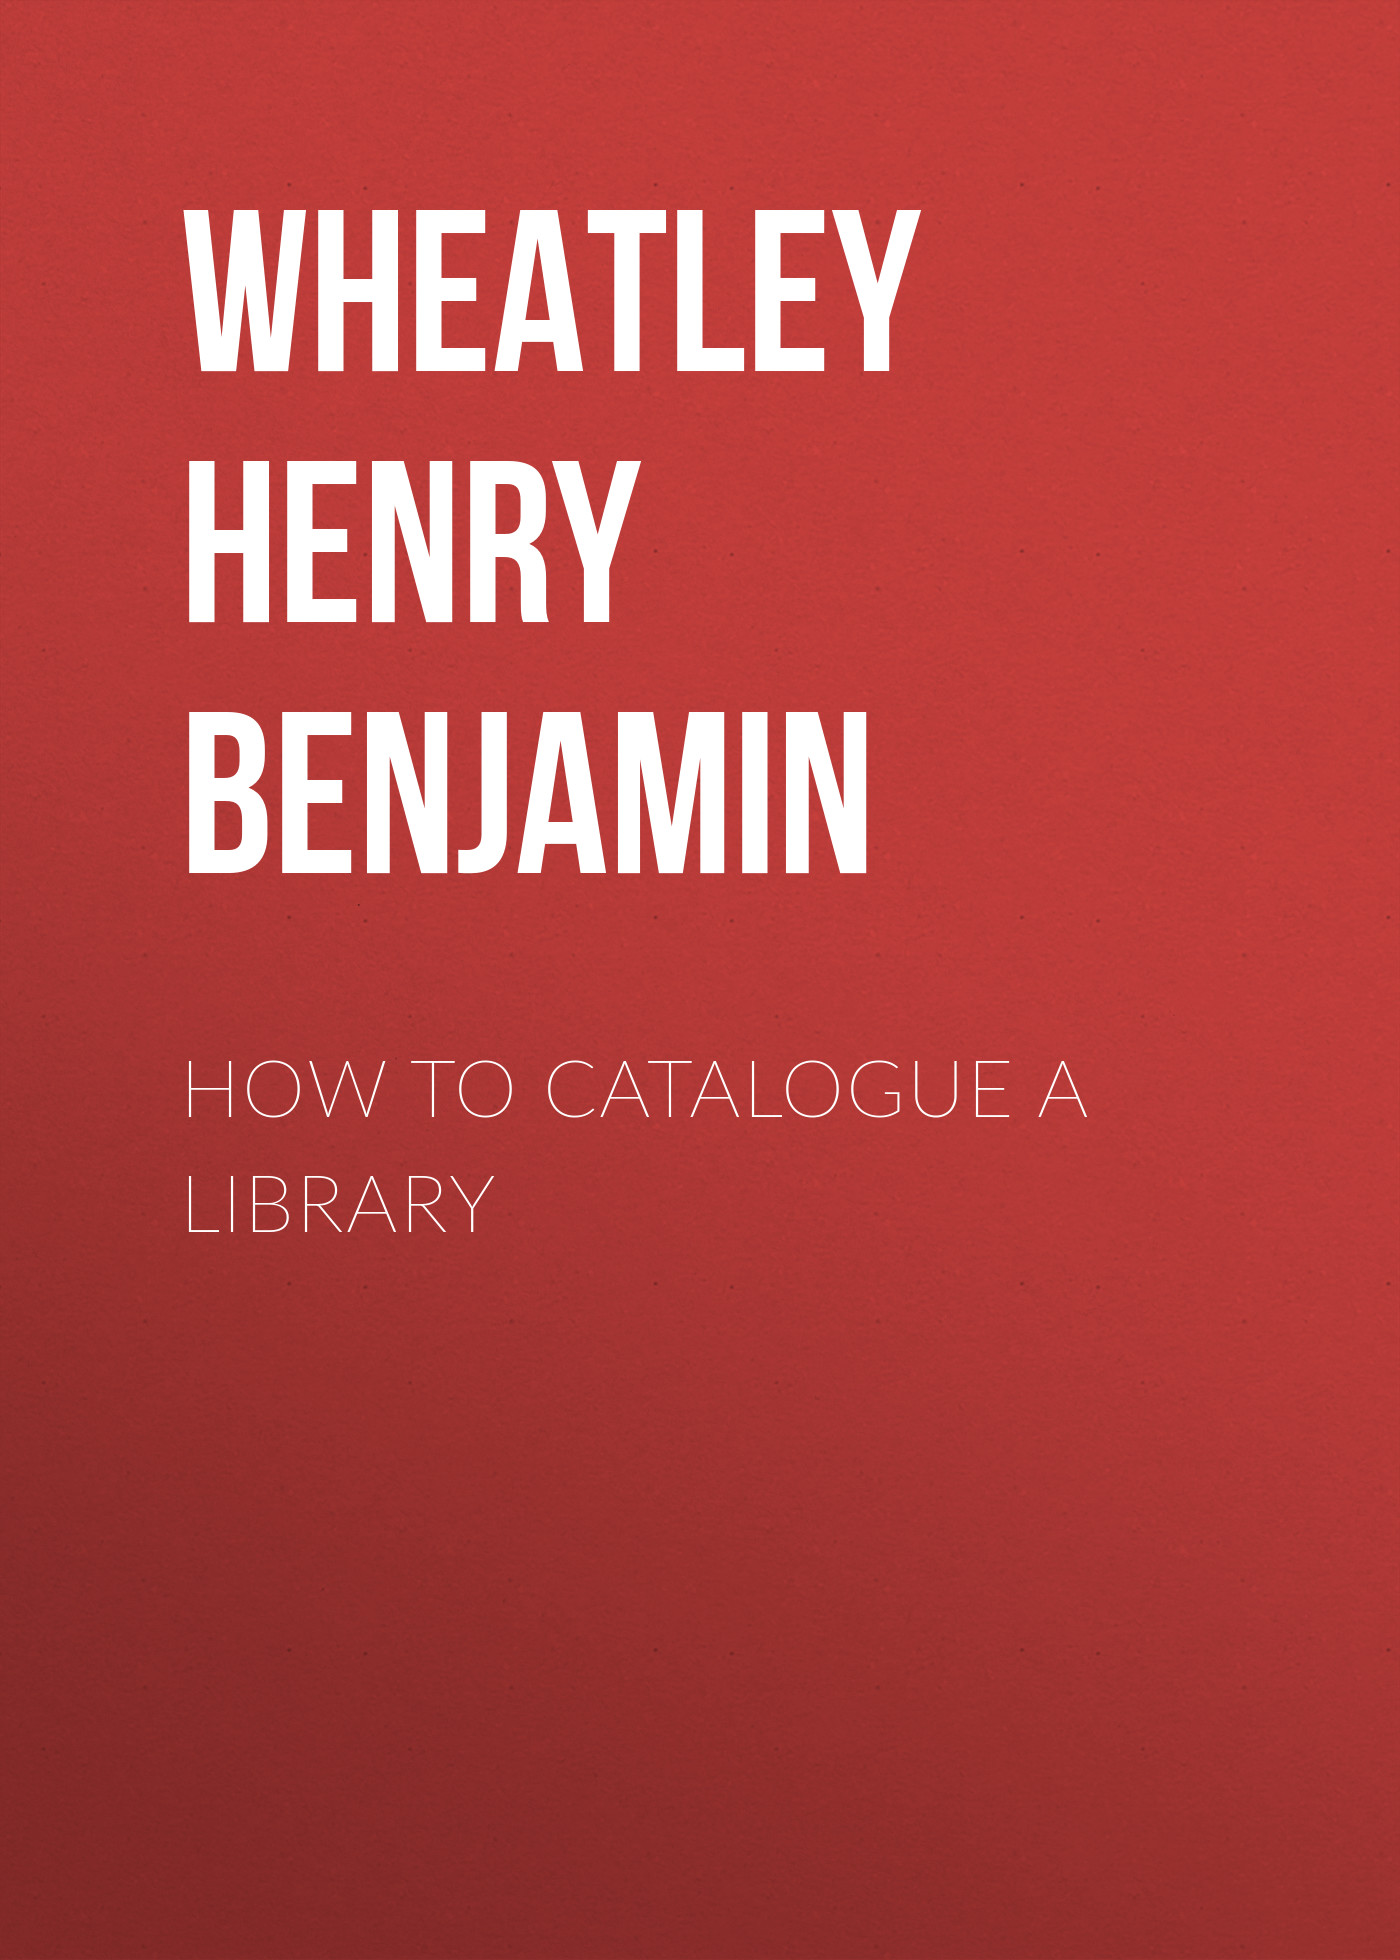 Wheatley Henry Benjamin How to Catalogue a Library wheatley henry benjamin prices of books